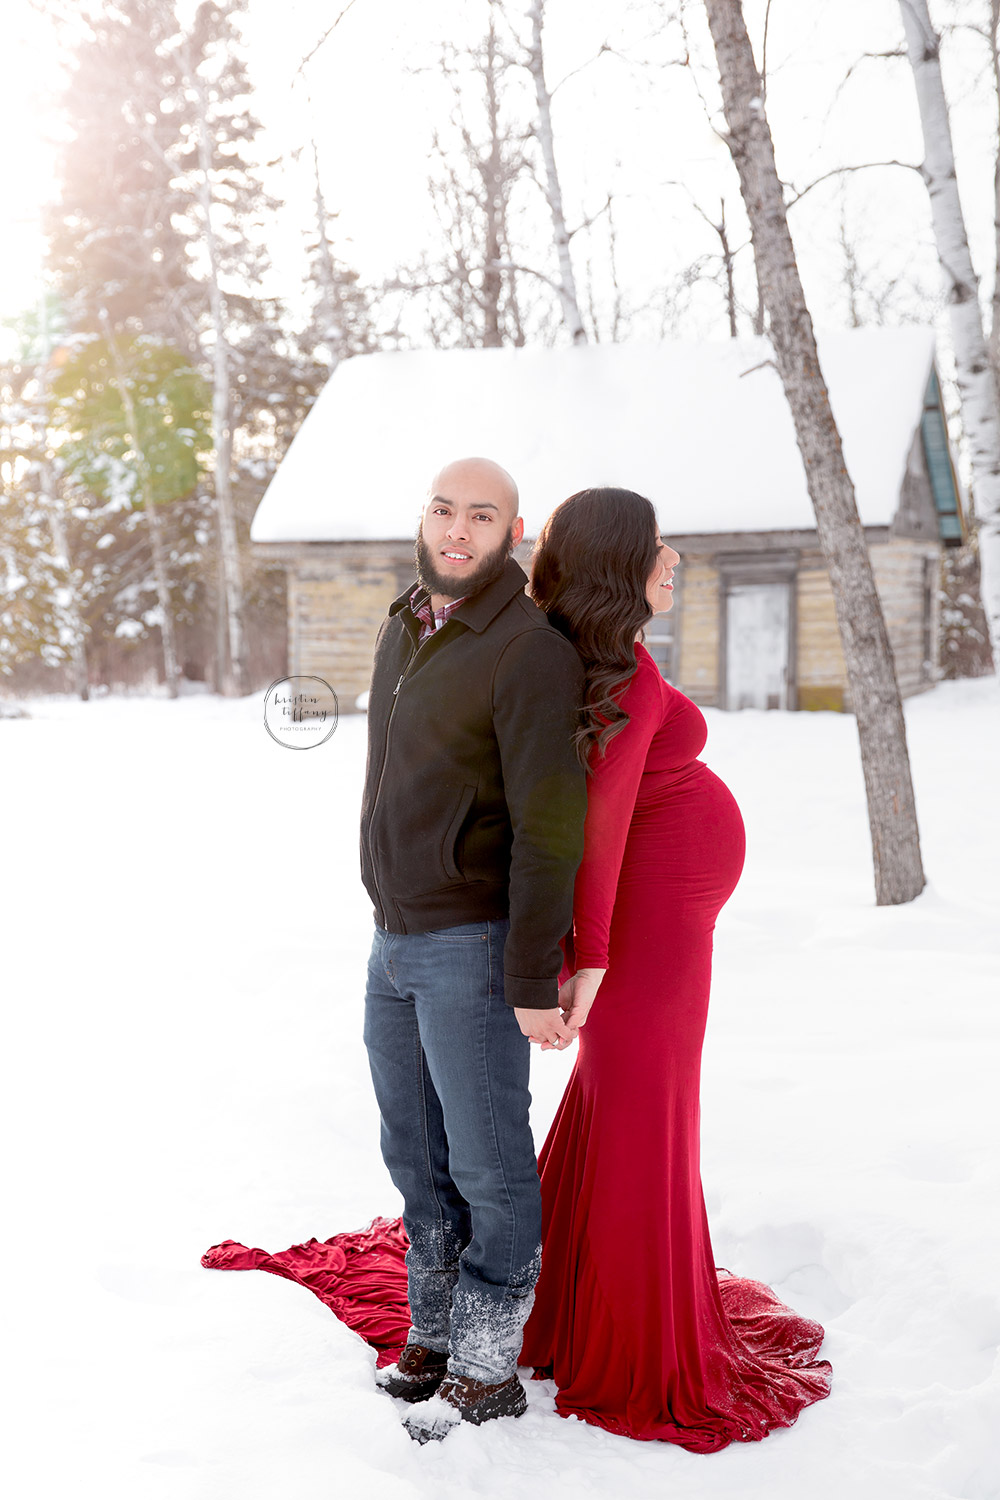 a maternity photo of a couple in the snow